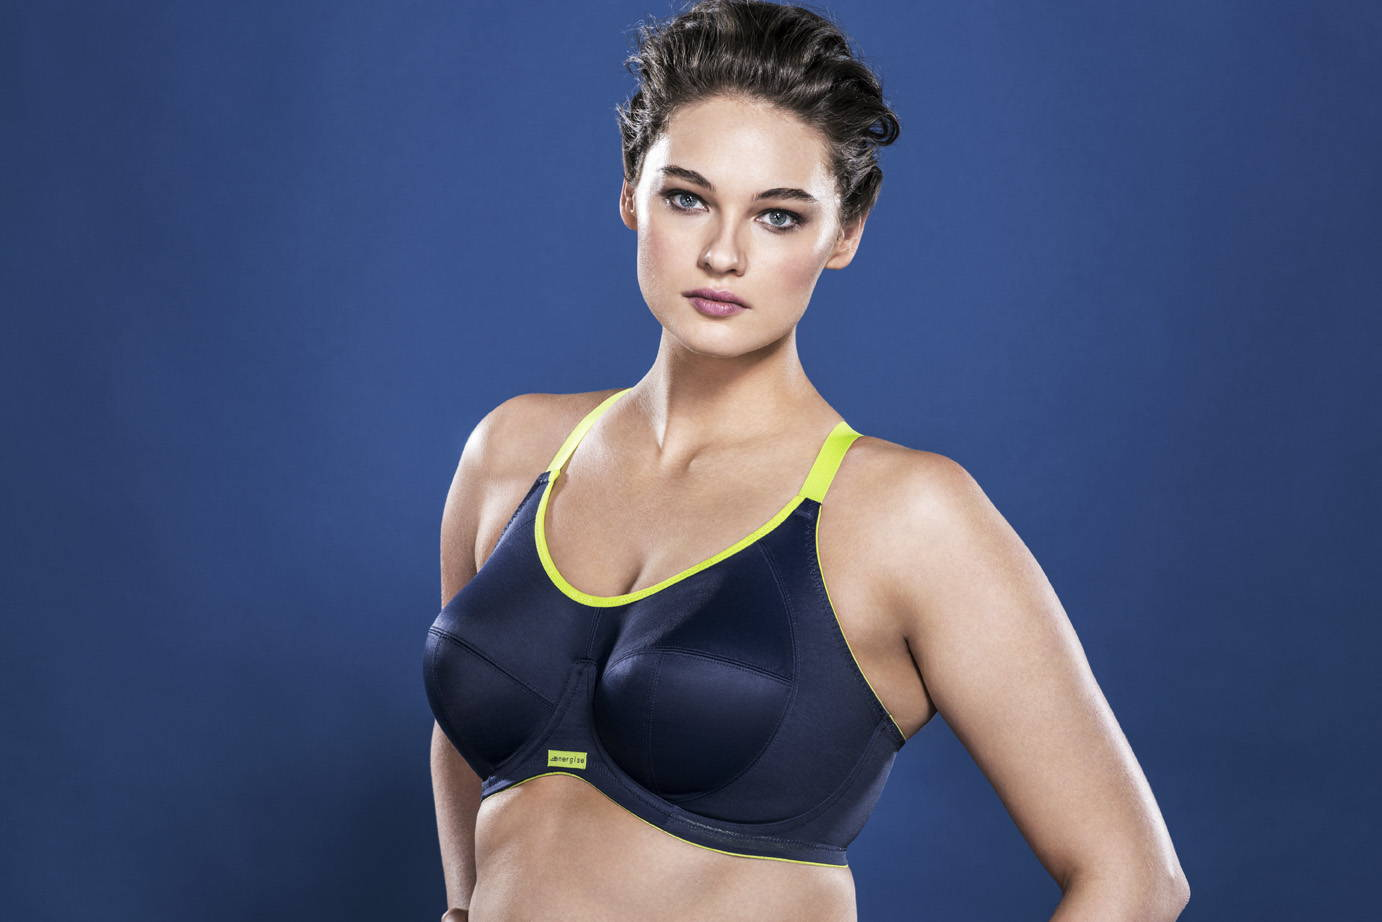 #elomi #DD+ #DDand up #supportive sports bras #lift and support #energise #uniboob #jhook